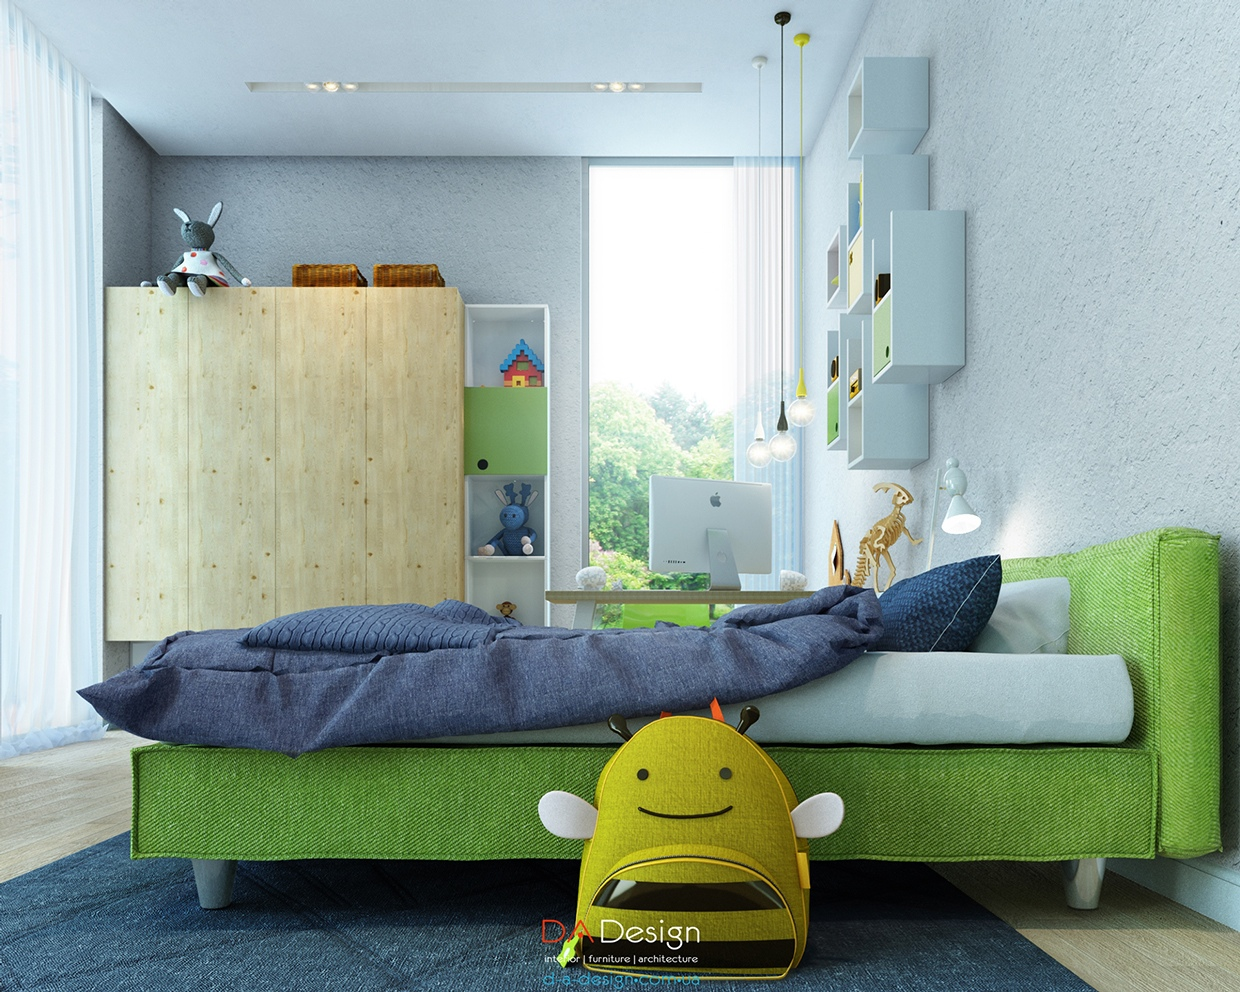 Colorful Kids Room Designs With Plenty Of Storage Space - Colorful kids room designs with plenty of storage space